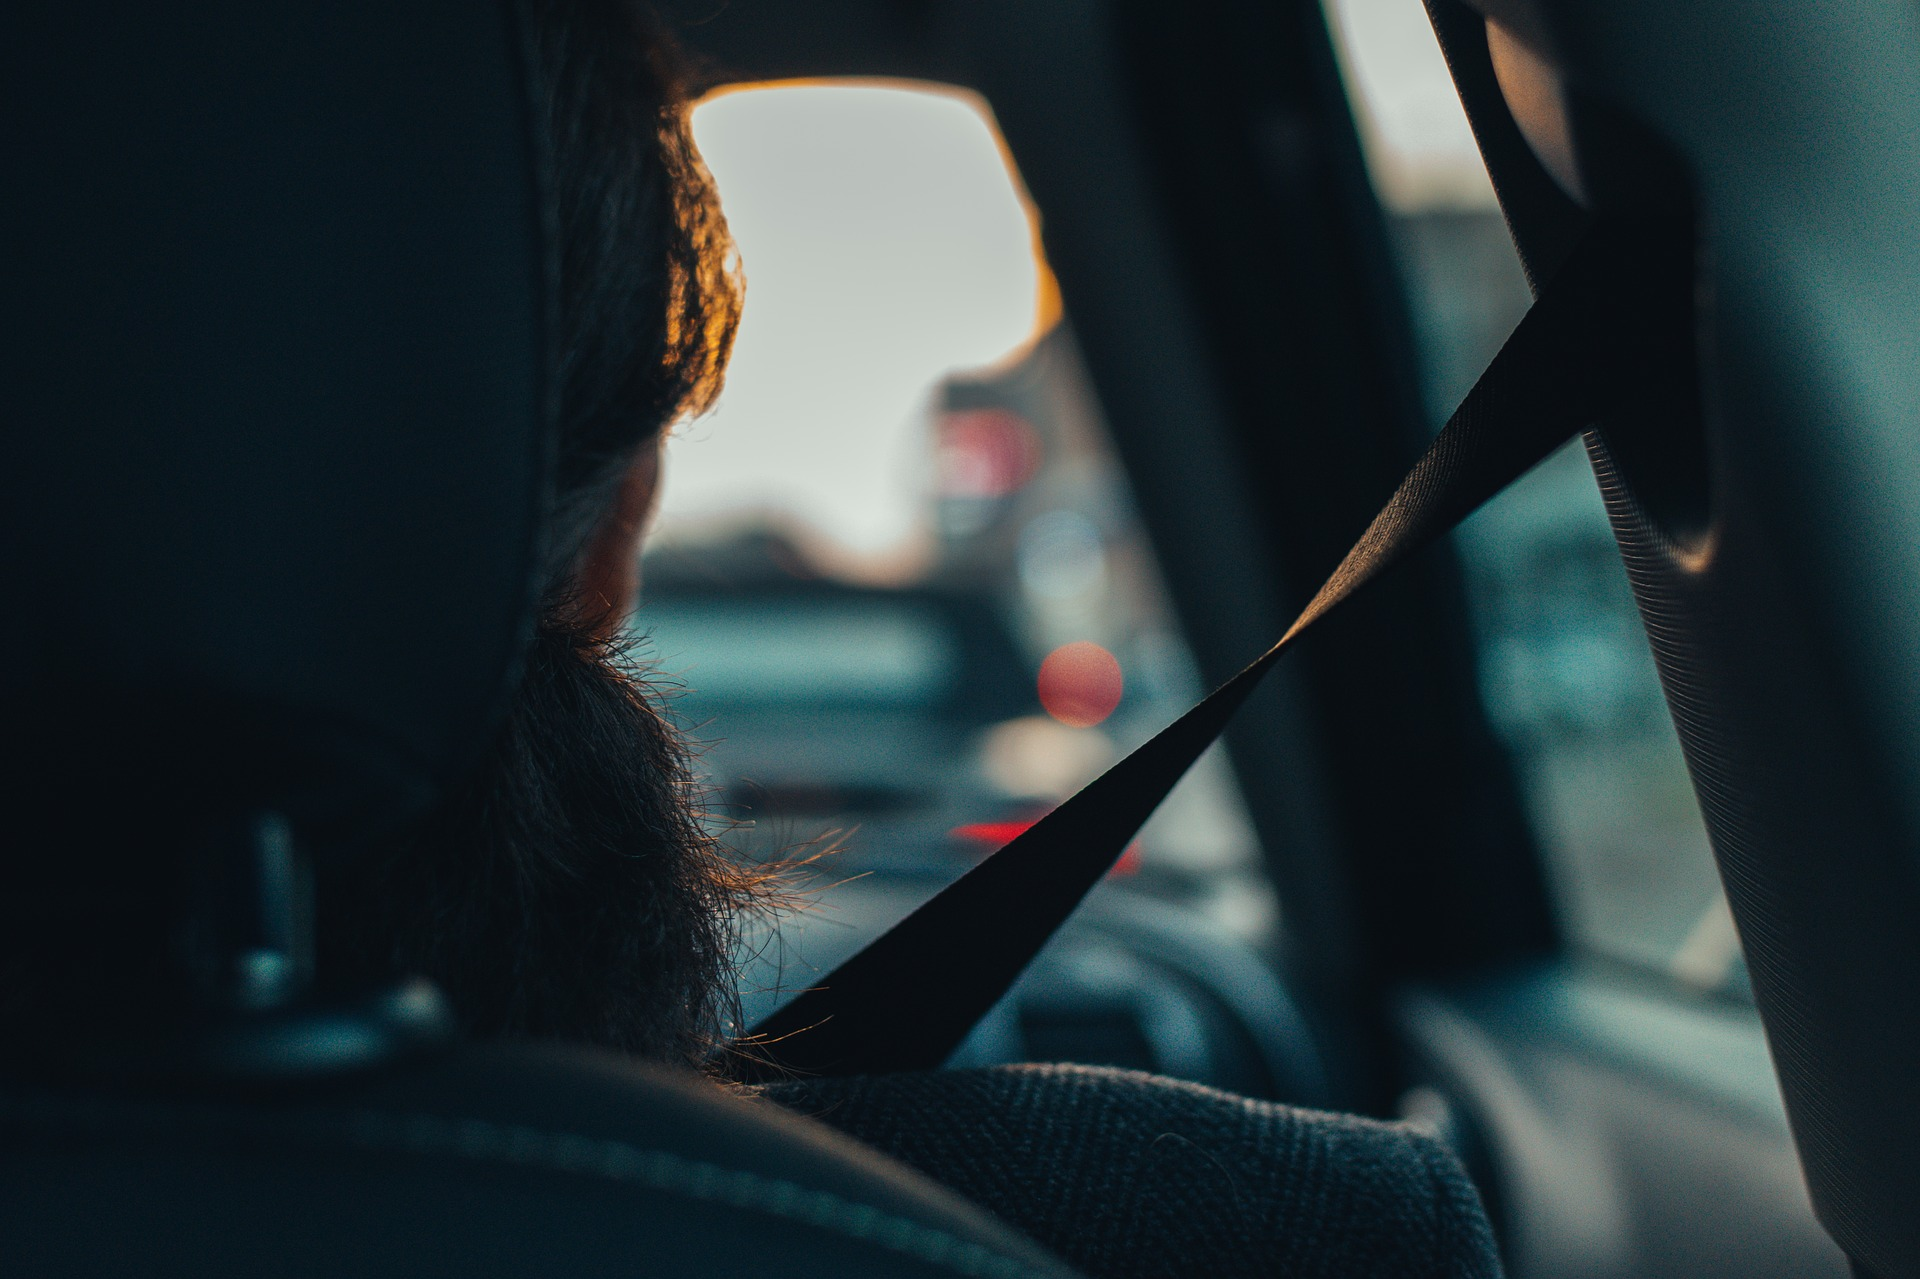 car 1865856 1920 - What Happens if You Drive Without a License in Maryland? The Penalties